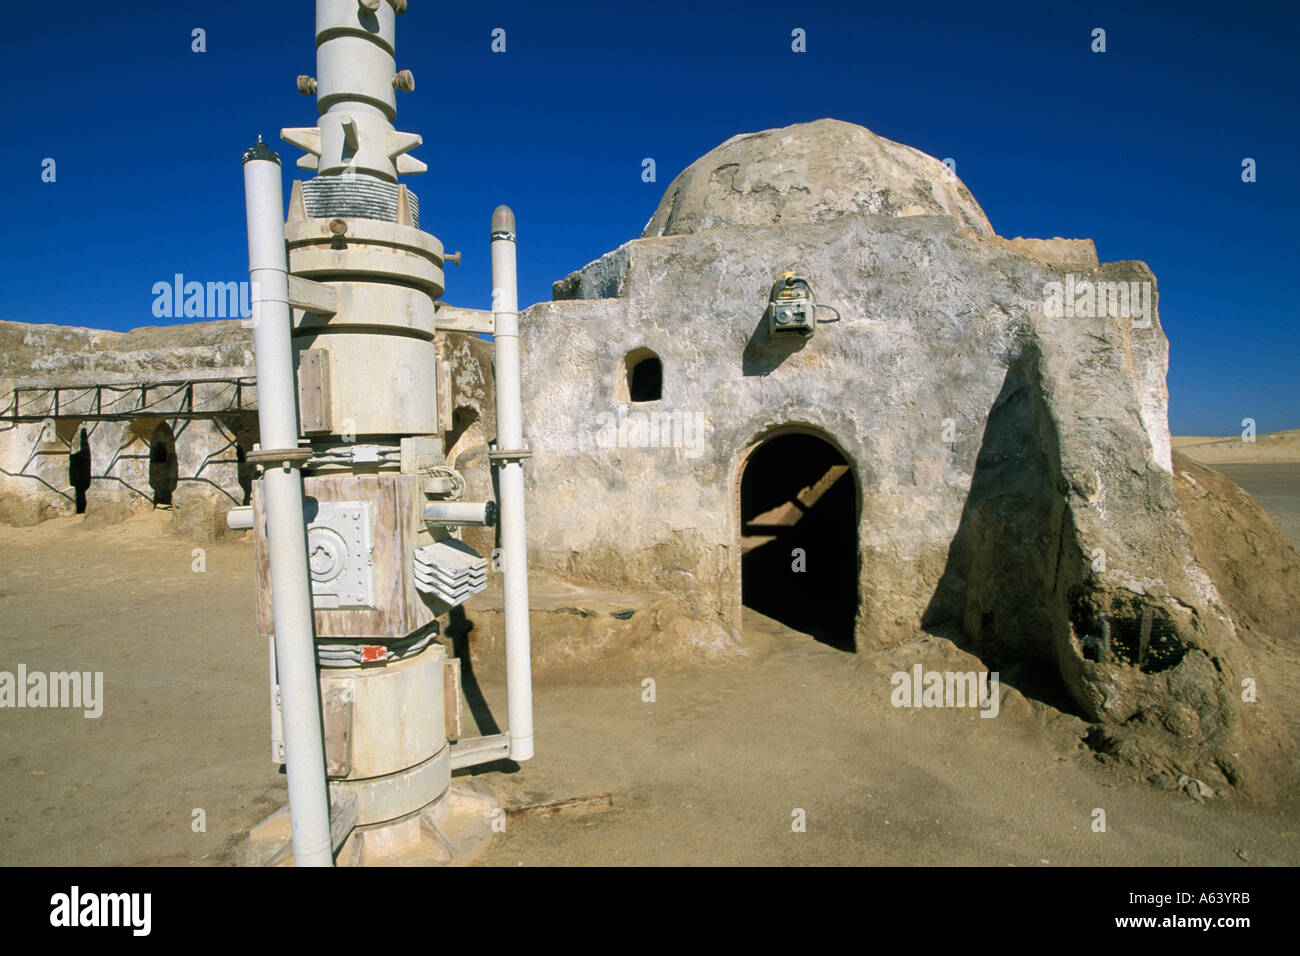 Tunisia Tozeur Onk Jemal Star Wars Set Stock Photo Alamy